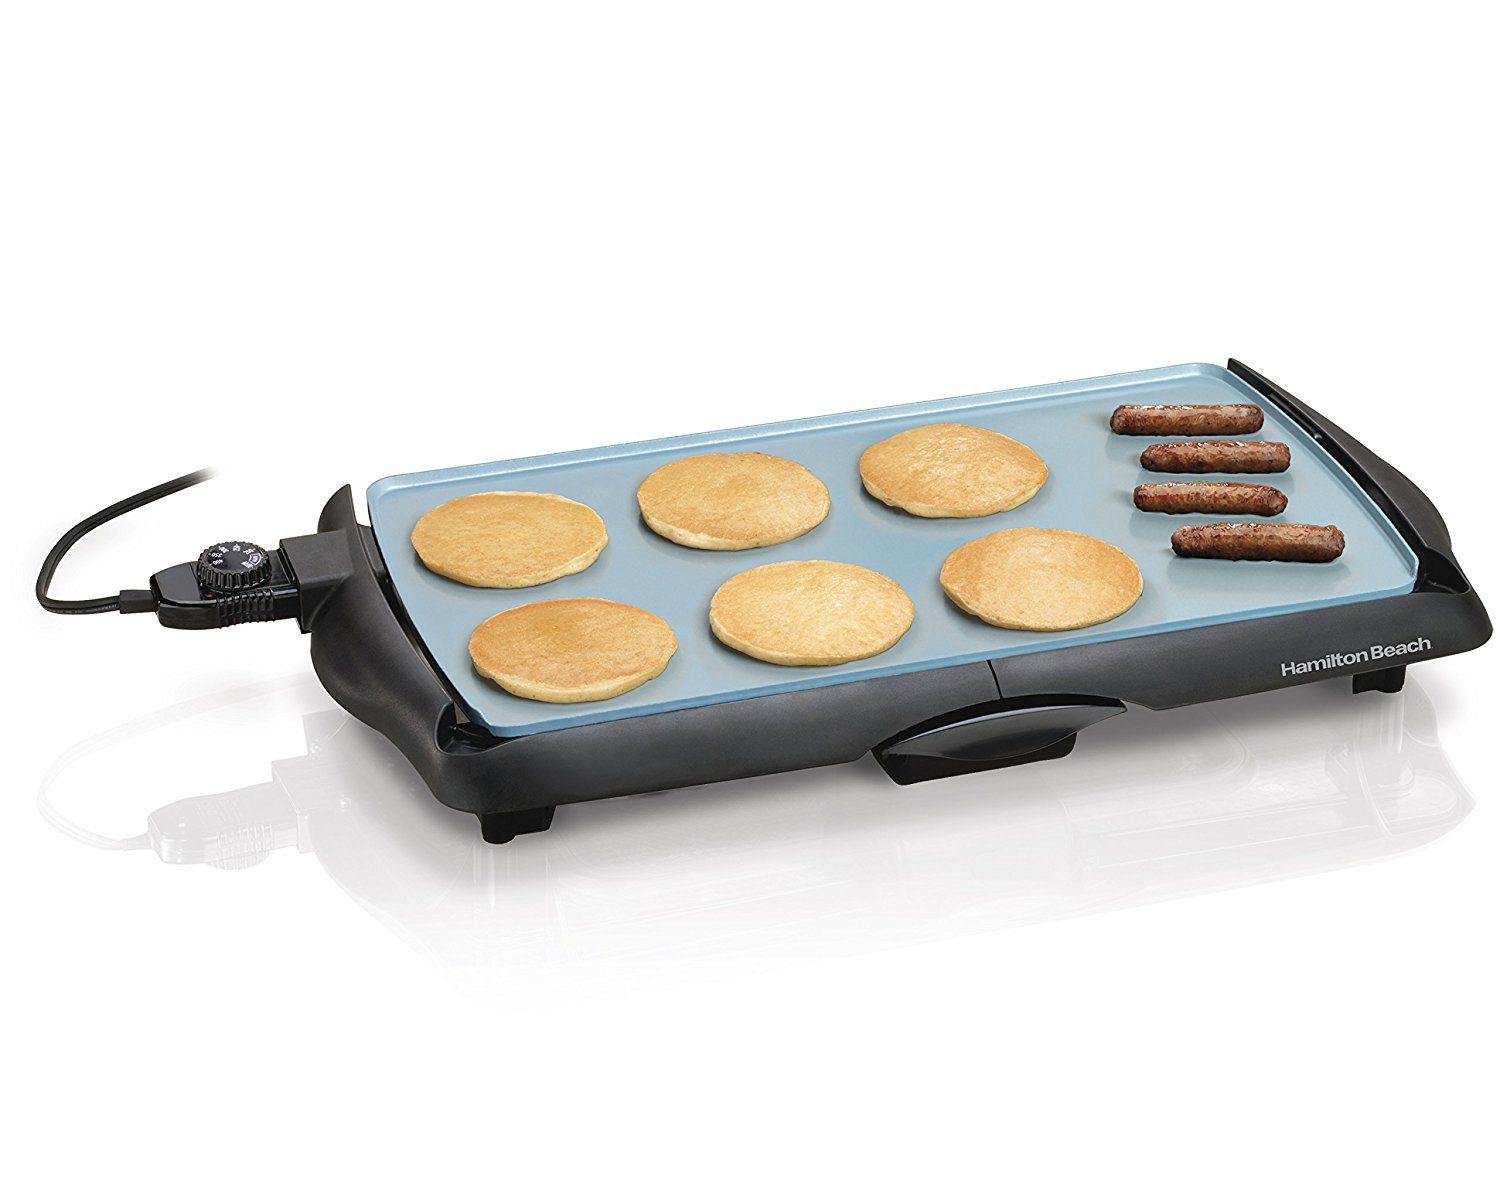 Hamilton Beach 38518 Durathon Ceramic Griddle, Black